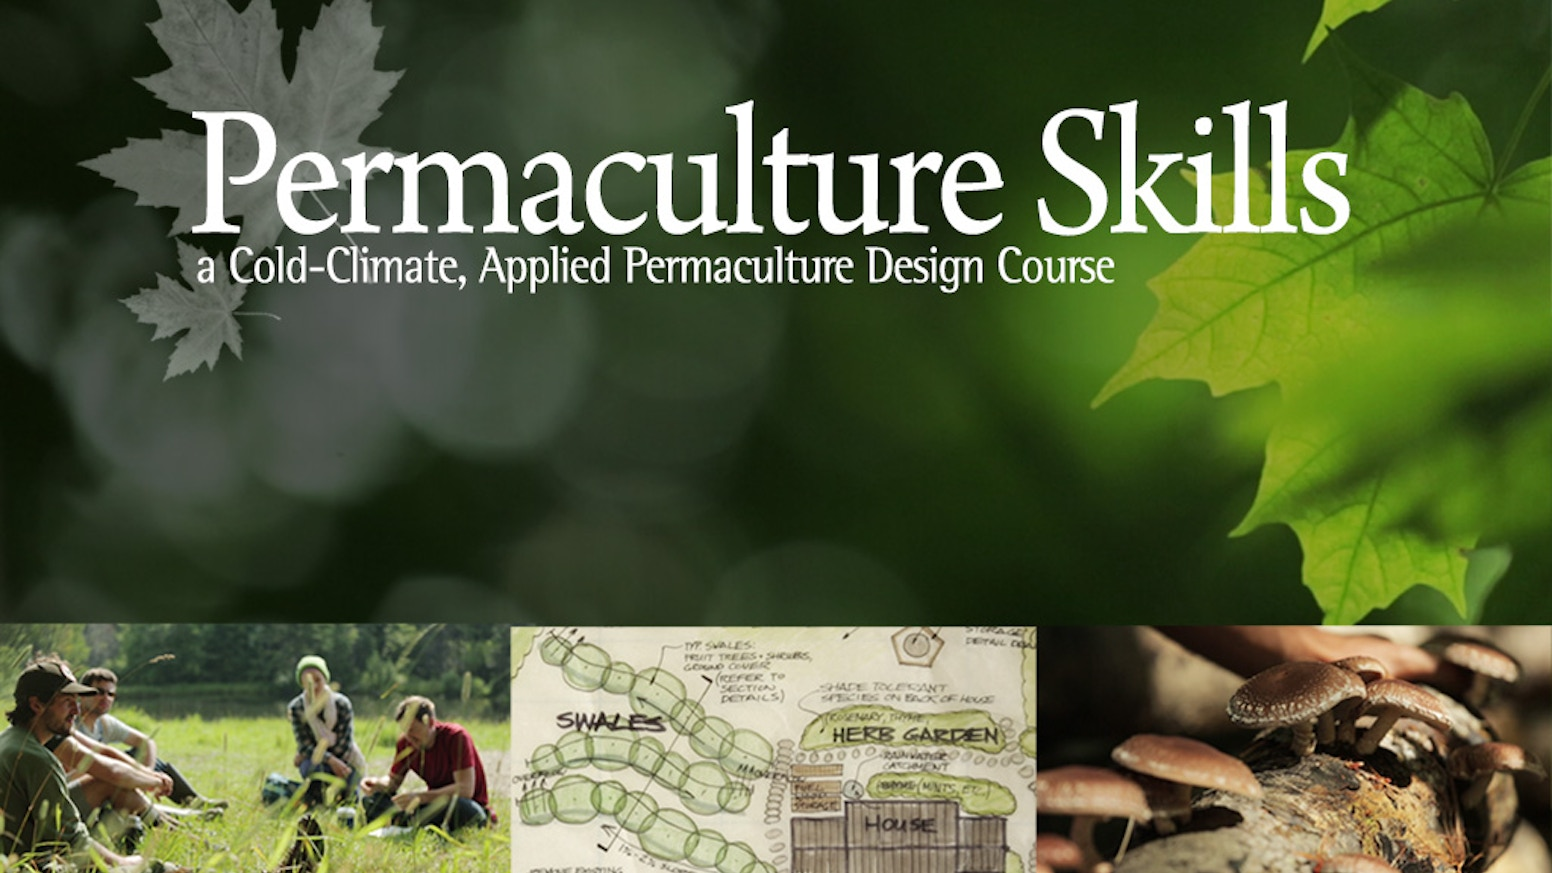 A film series distilled from 20 days of cold-climate Permaculture Design Courses in the Vermont Hills.